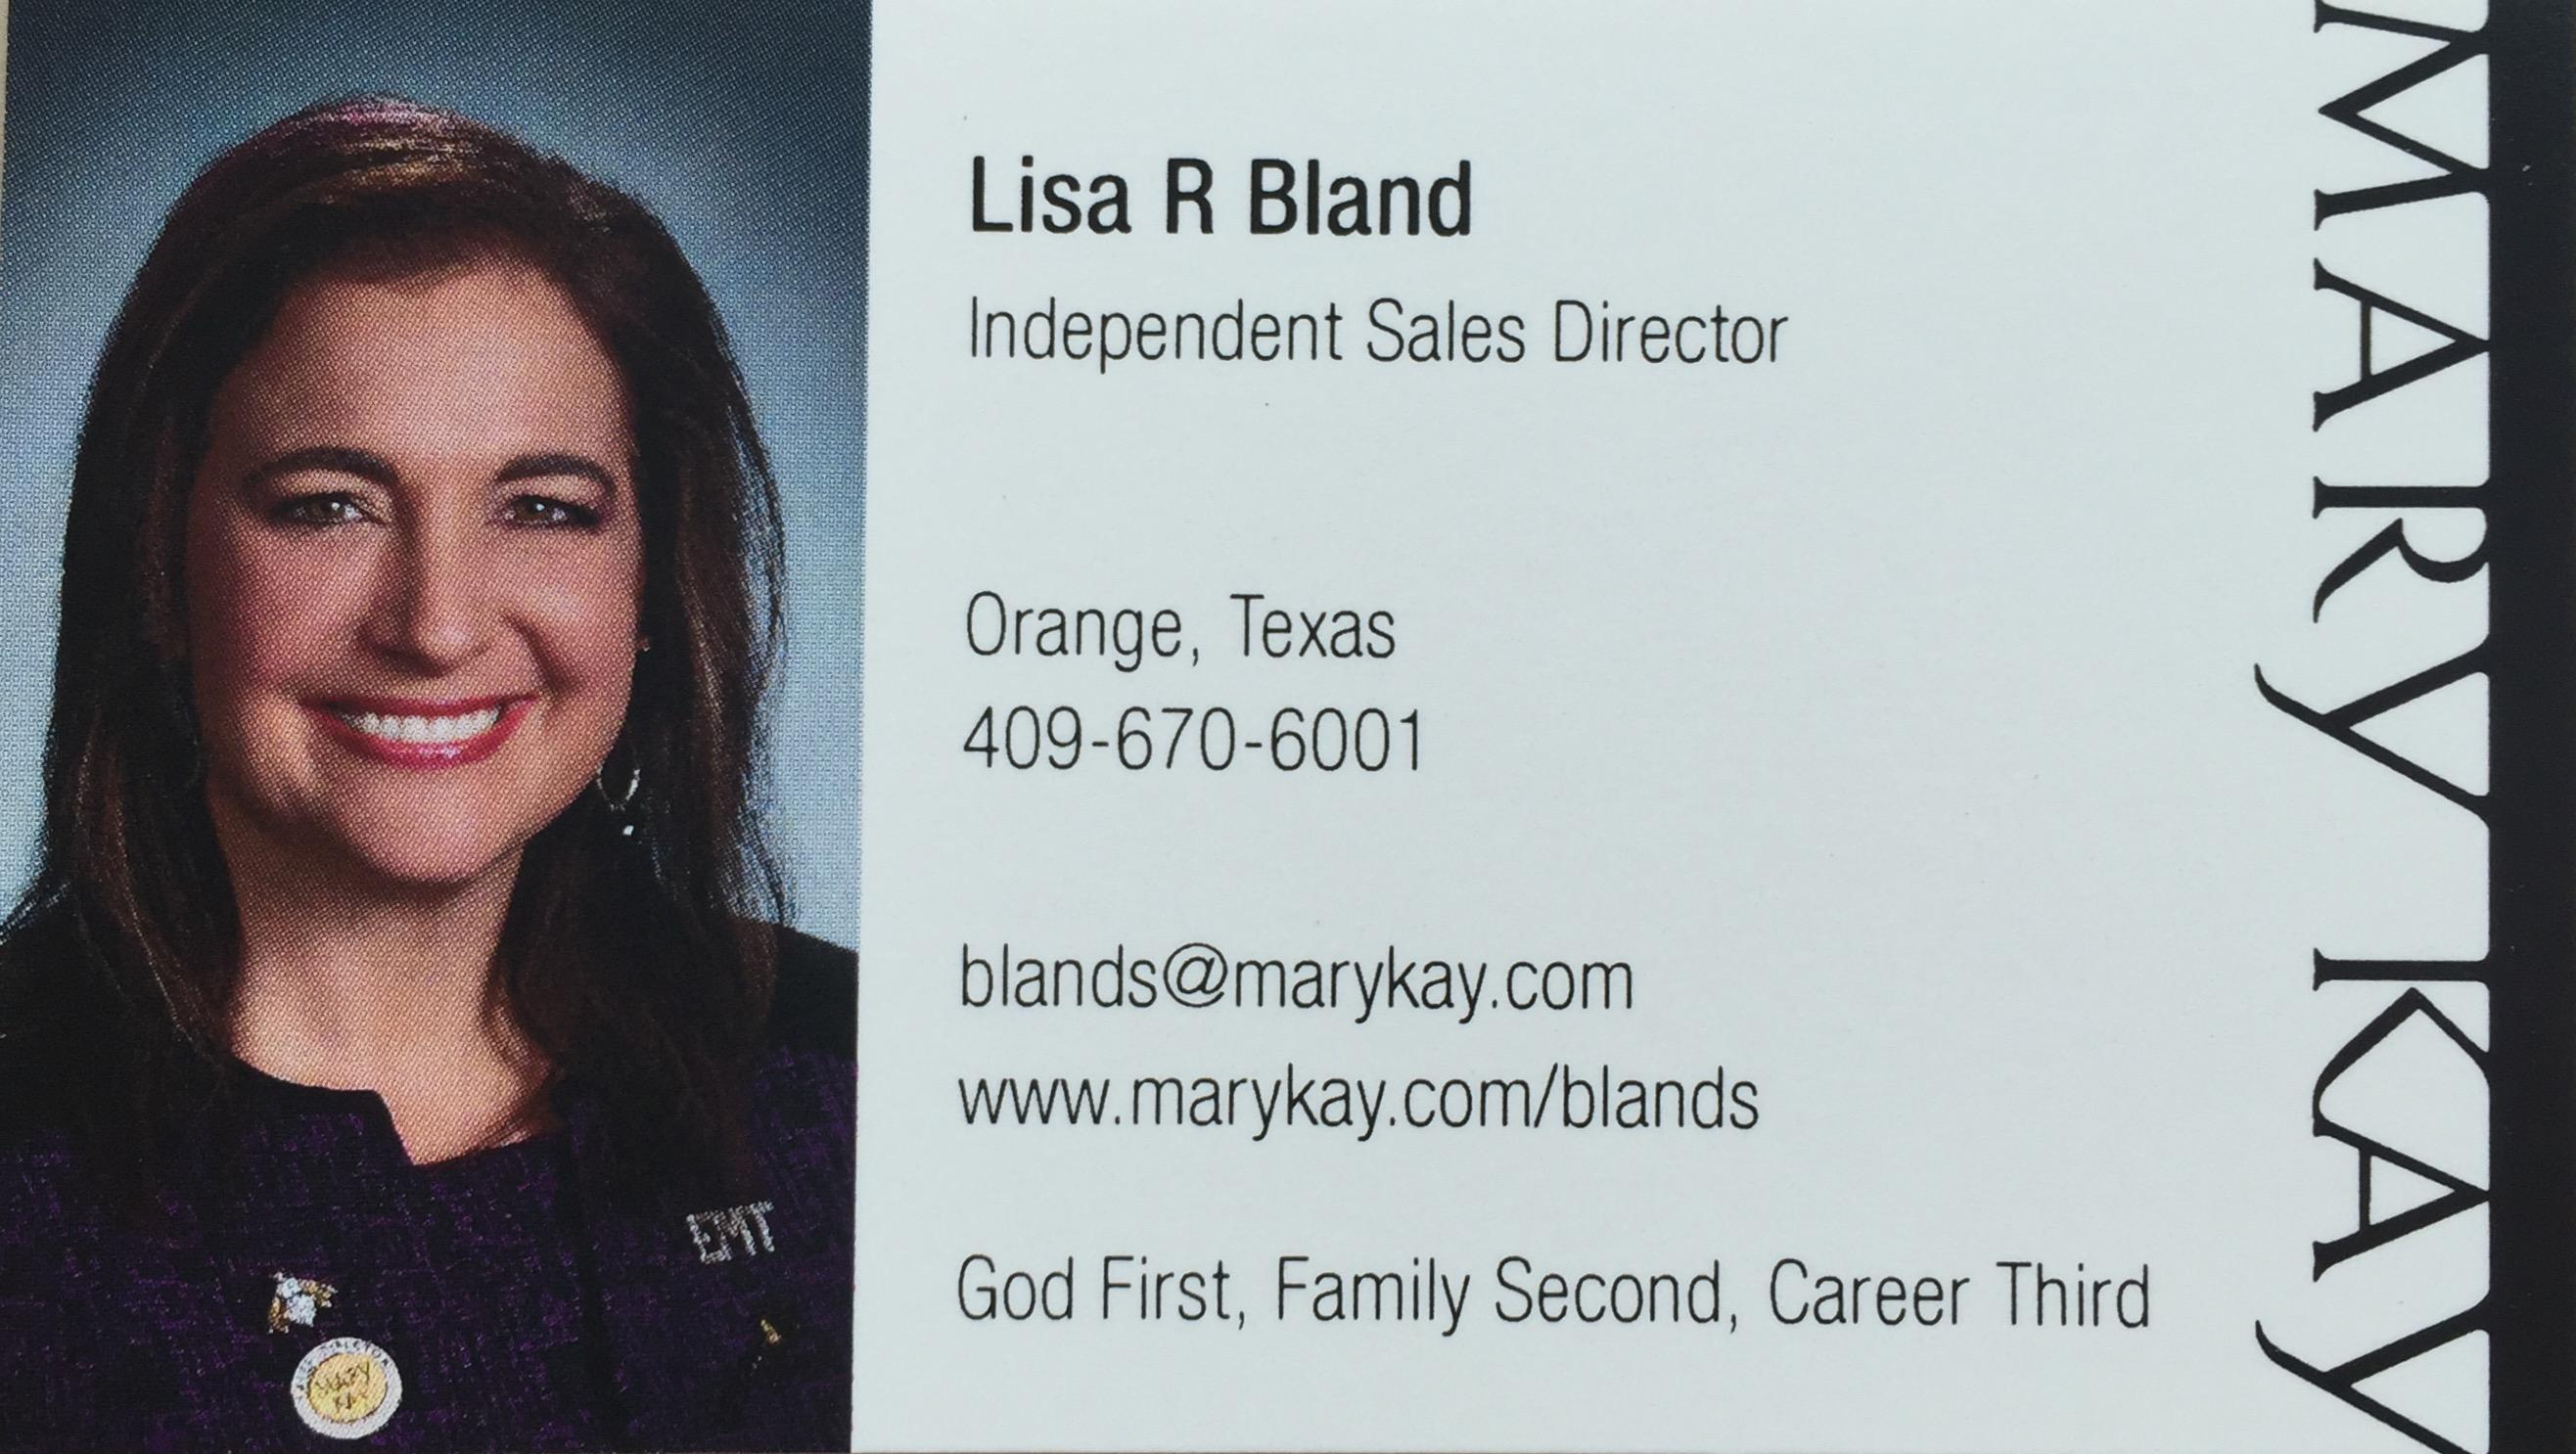 Lisa Bland Works A Mary Kay Business & Homeschools - You Can, Too!